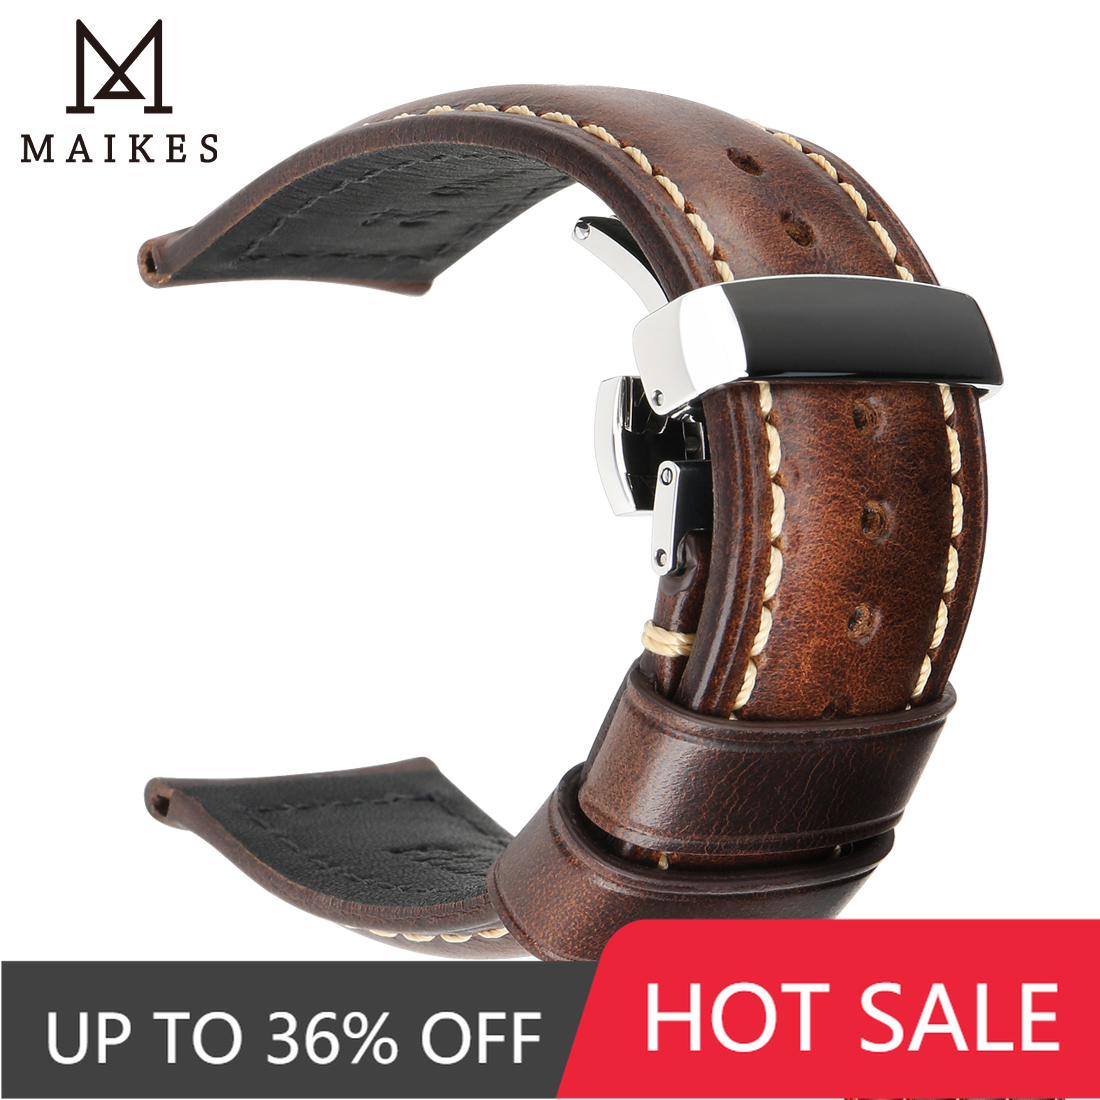 Maikes Handmade Genuine Leather Watchbands 18mm 20mm 22mm 24mm Universal Butterfly Buckle Watch Strap